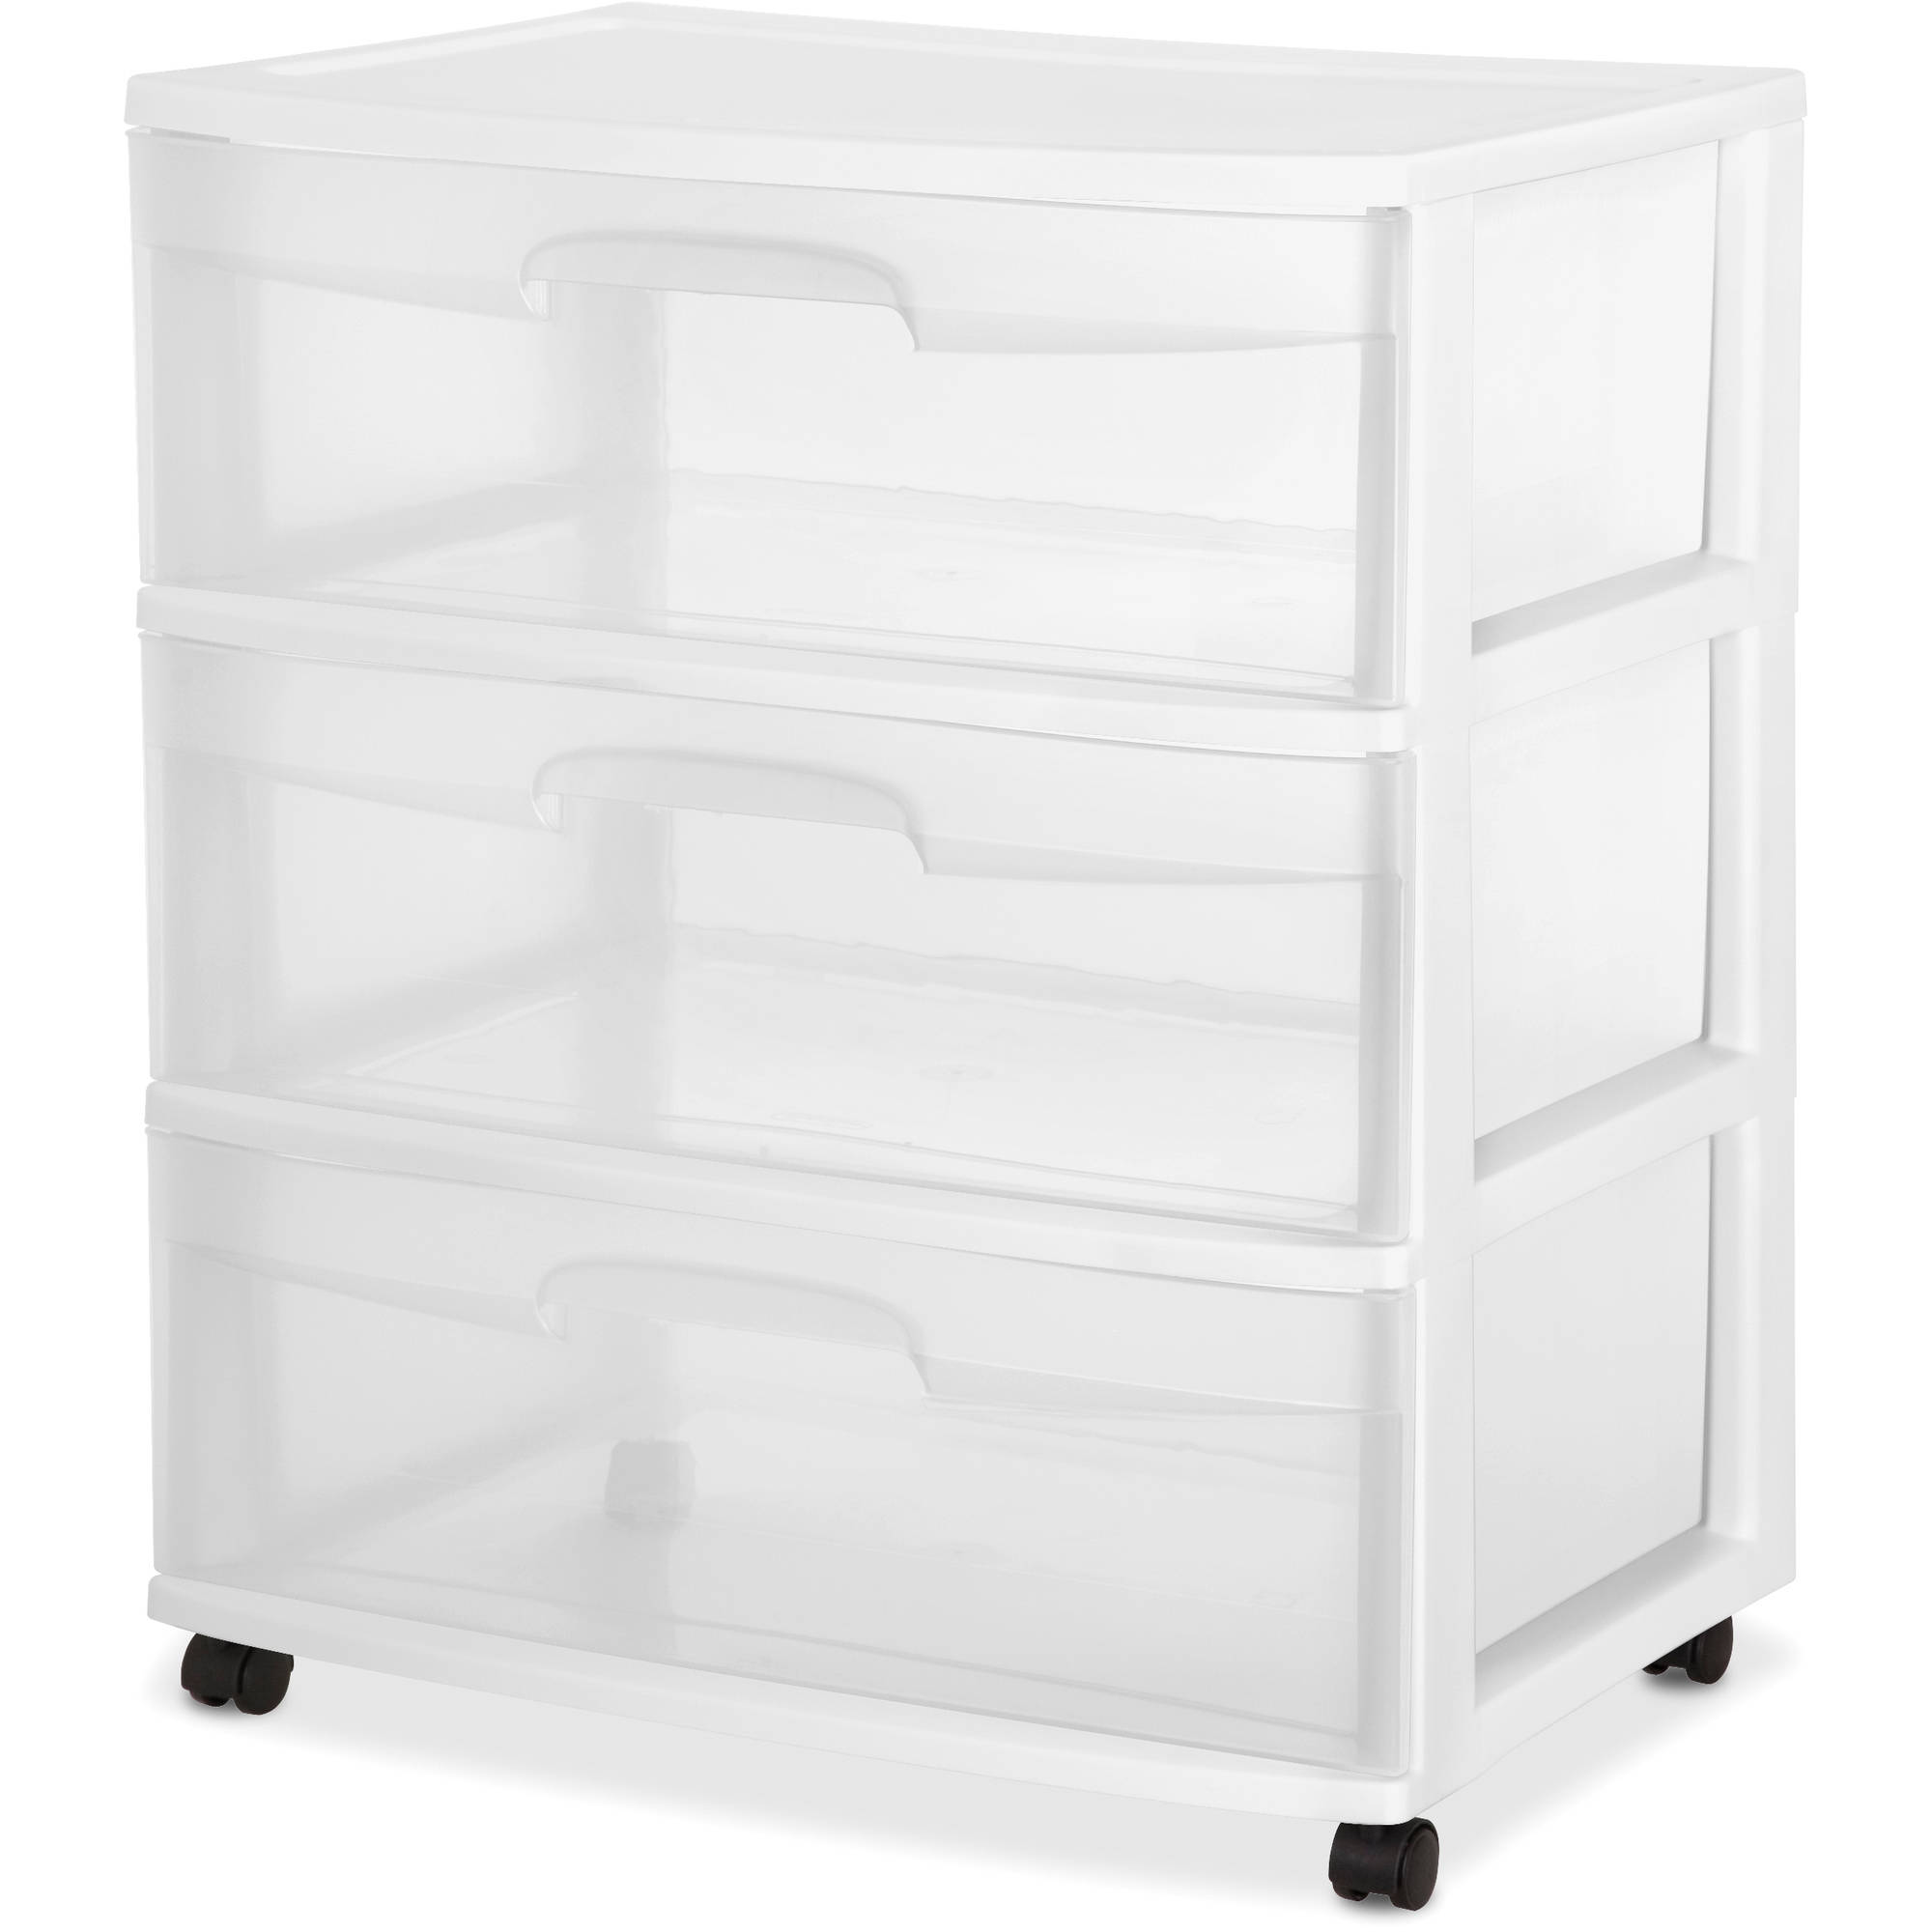 ikea en gb galant combination furniture cabinet with storage office home cabinets products drawers units drawer white